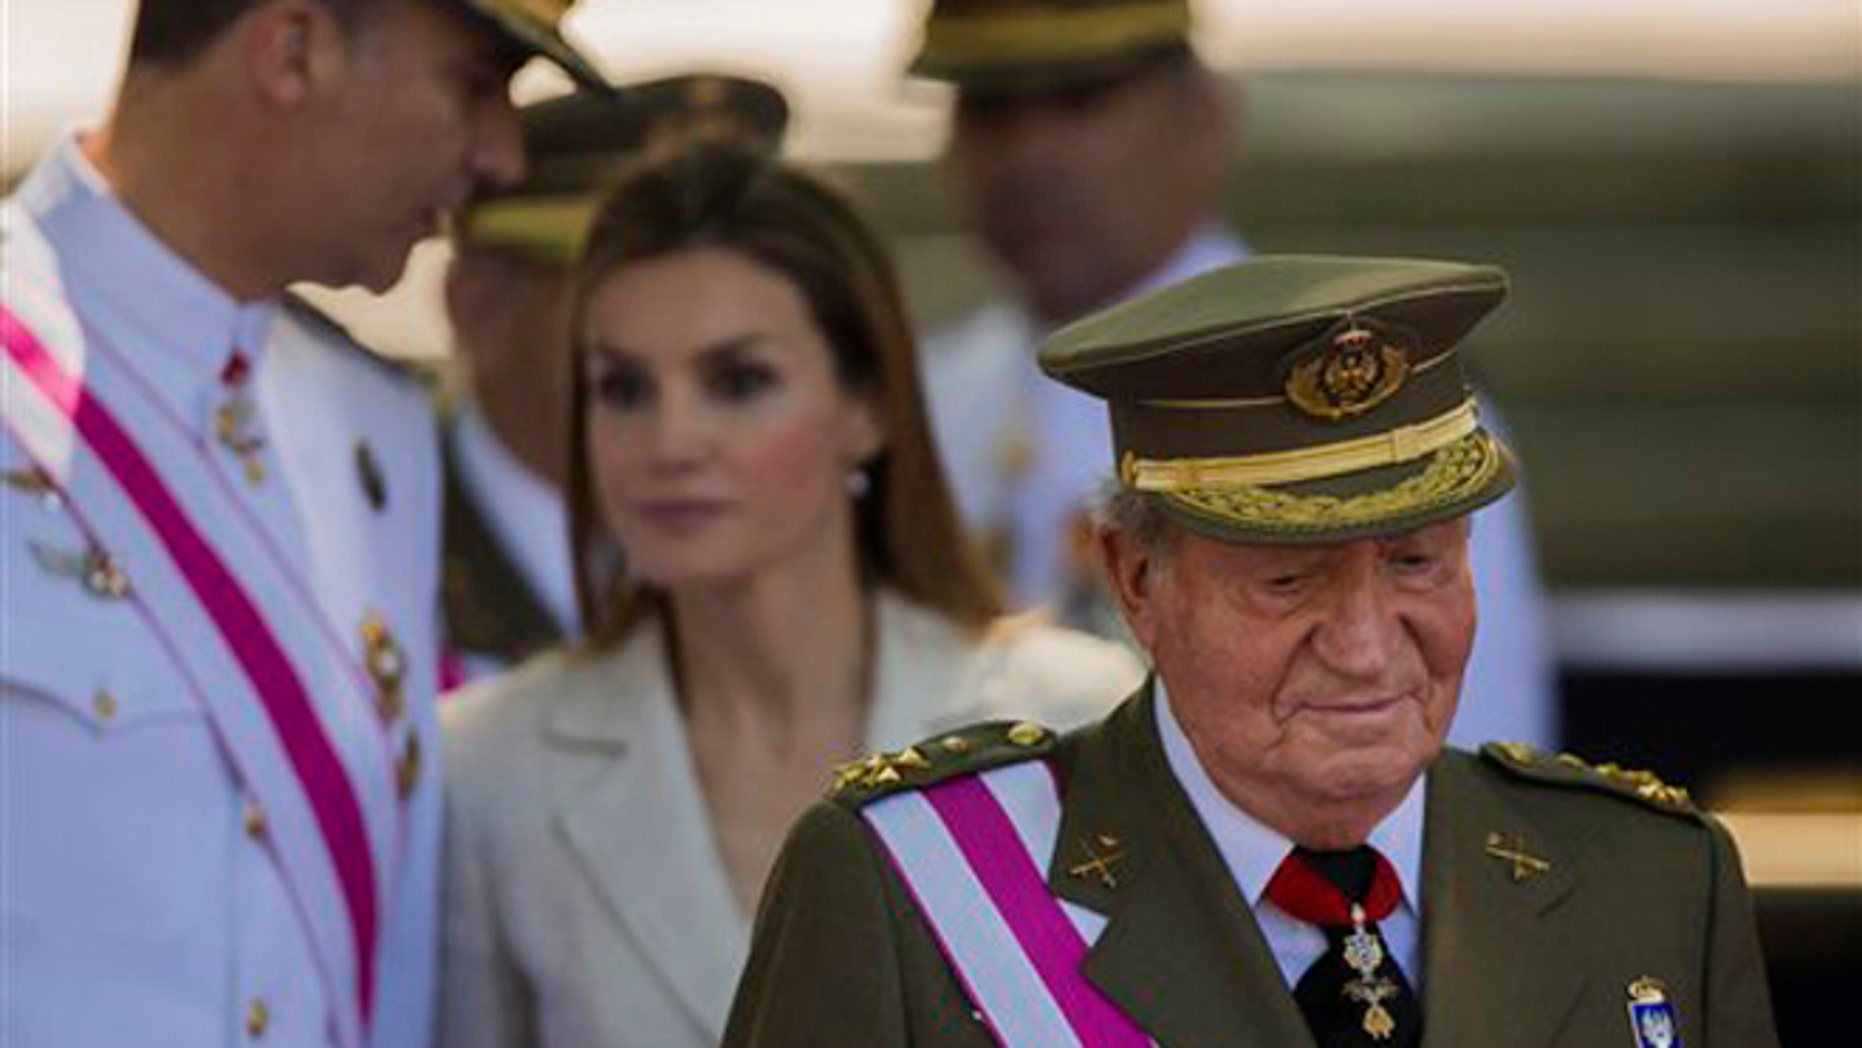 Spanish Crown Prince Felipe, background left, talks with Spanish Princess Letizia, as Spanish King Juan Carlos, foreground looks on, during a military parade on Armed Forces day in Madrid, Spain, Sunday, June 8, 2014. King Juan Carlos plans to abdicate and pave the way for his son, Crown Prince Felipe, to become the country's next king. The 76-year-old Juan Carlos oversaw his country's transition from dictatorship to democracy but has had repeated health problems in recent years. His popularity also dipped following royal scandals, including an elephant-shooting trip he took in the middle of Spain's financial crisis that tarnished the monarch's image. The king came to power in 1975, two days after the death of longtime dictator Francisco Franco. (AP Photo/Andres Kudacki)